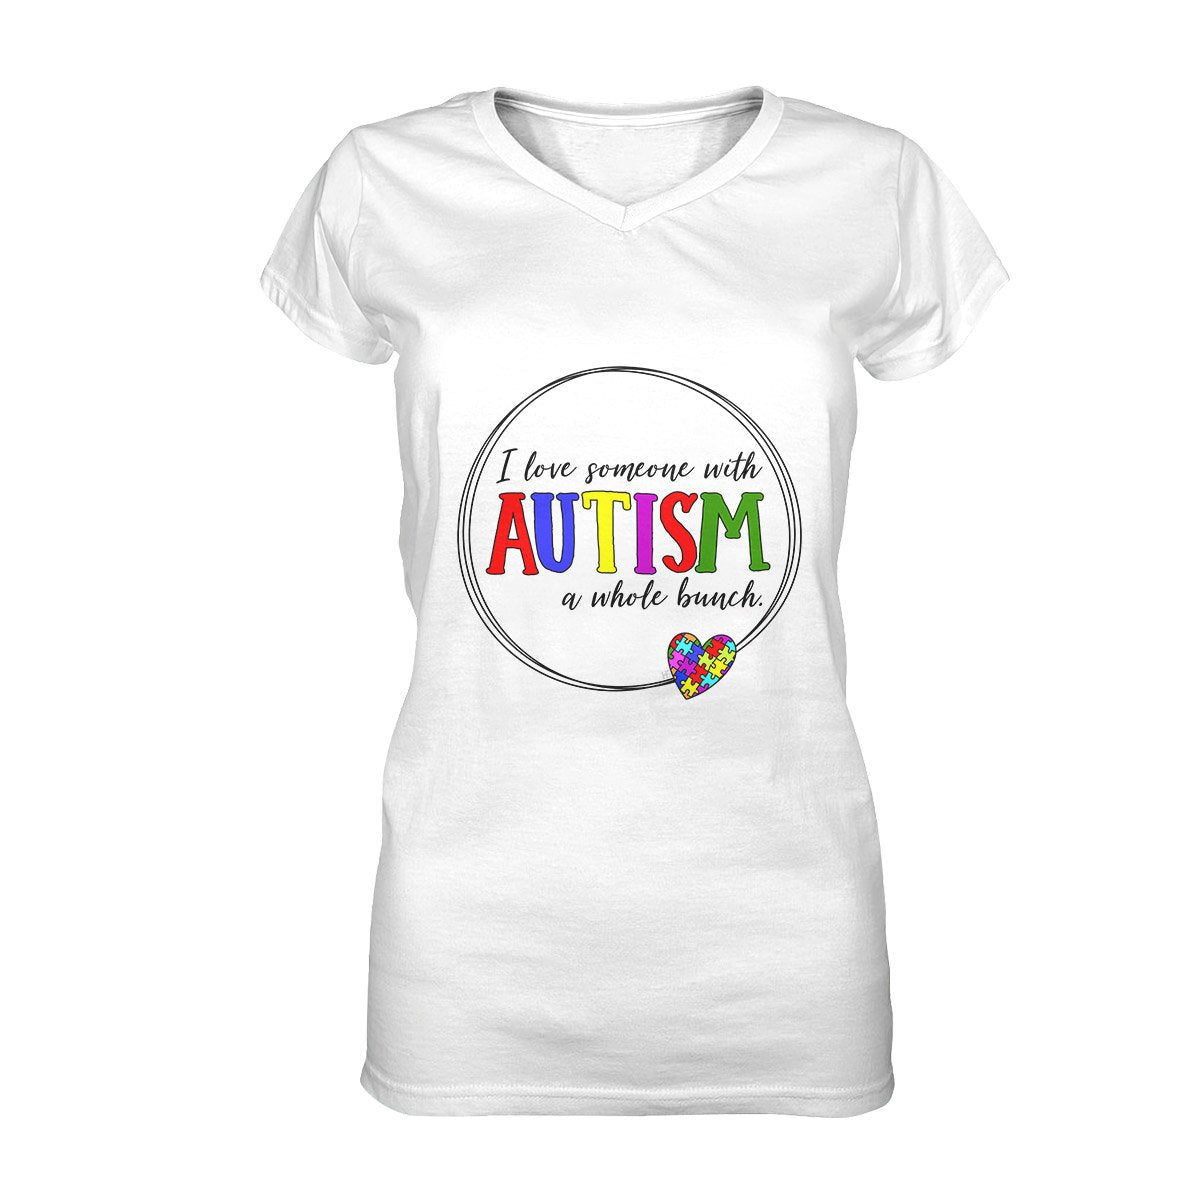 I Love Someone with Autism a Whole Bunch EZ16 2808 Women V-neck T-shirt